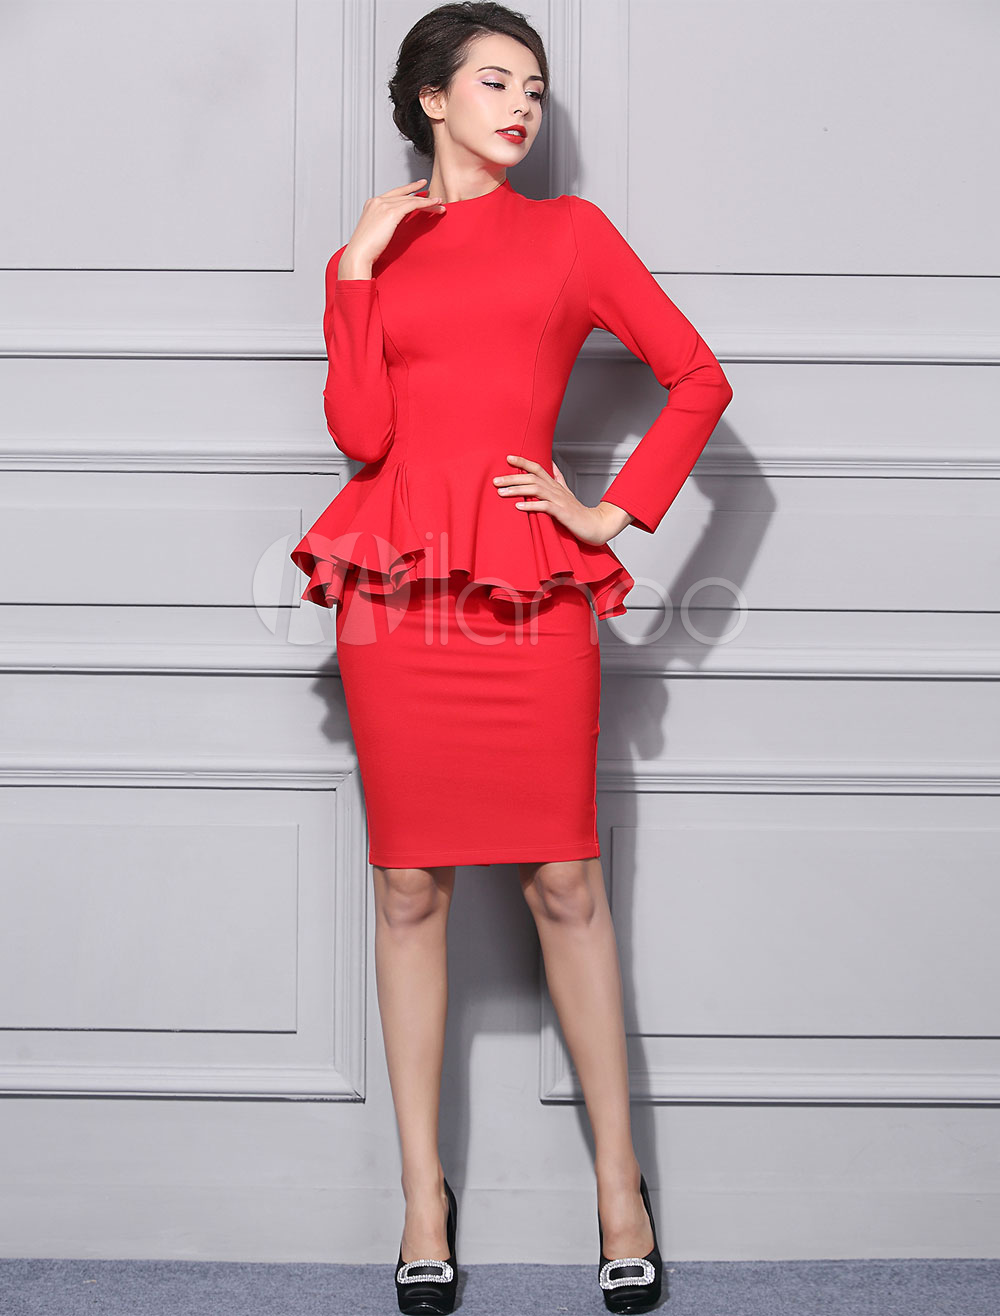 2 Piece Skirt Set Red High Collar Long Sleeve Ruffle Top With Bodycon Skirt Cheap clothes, free shipping worldwide